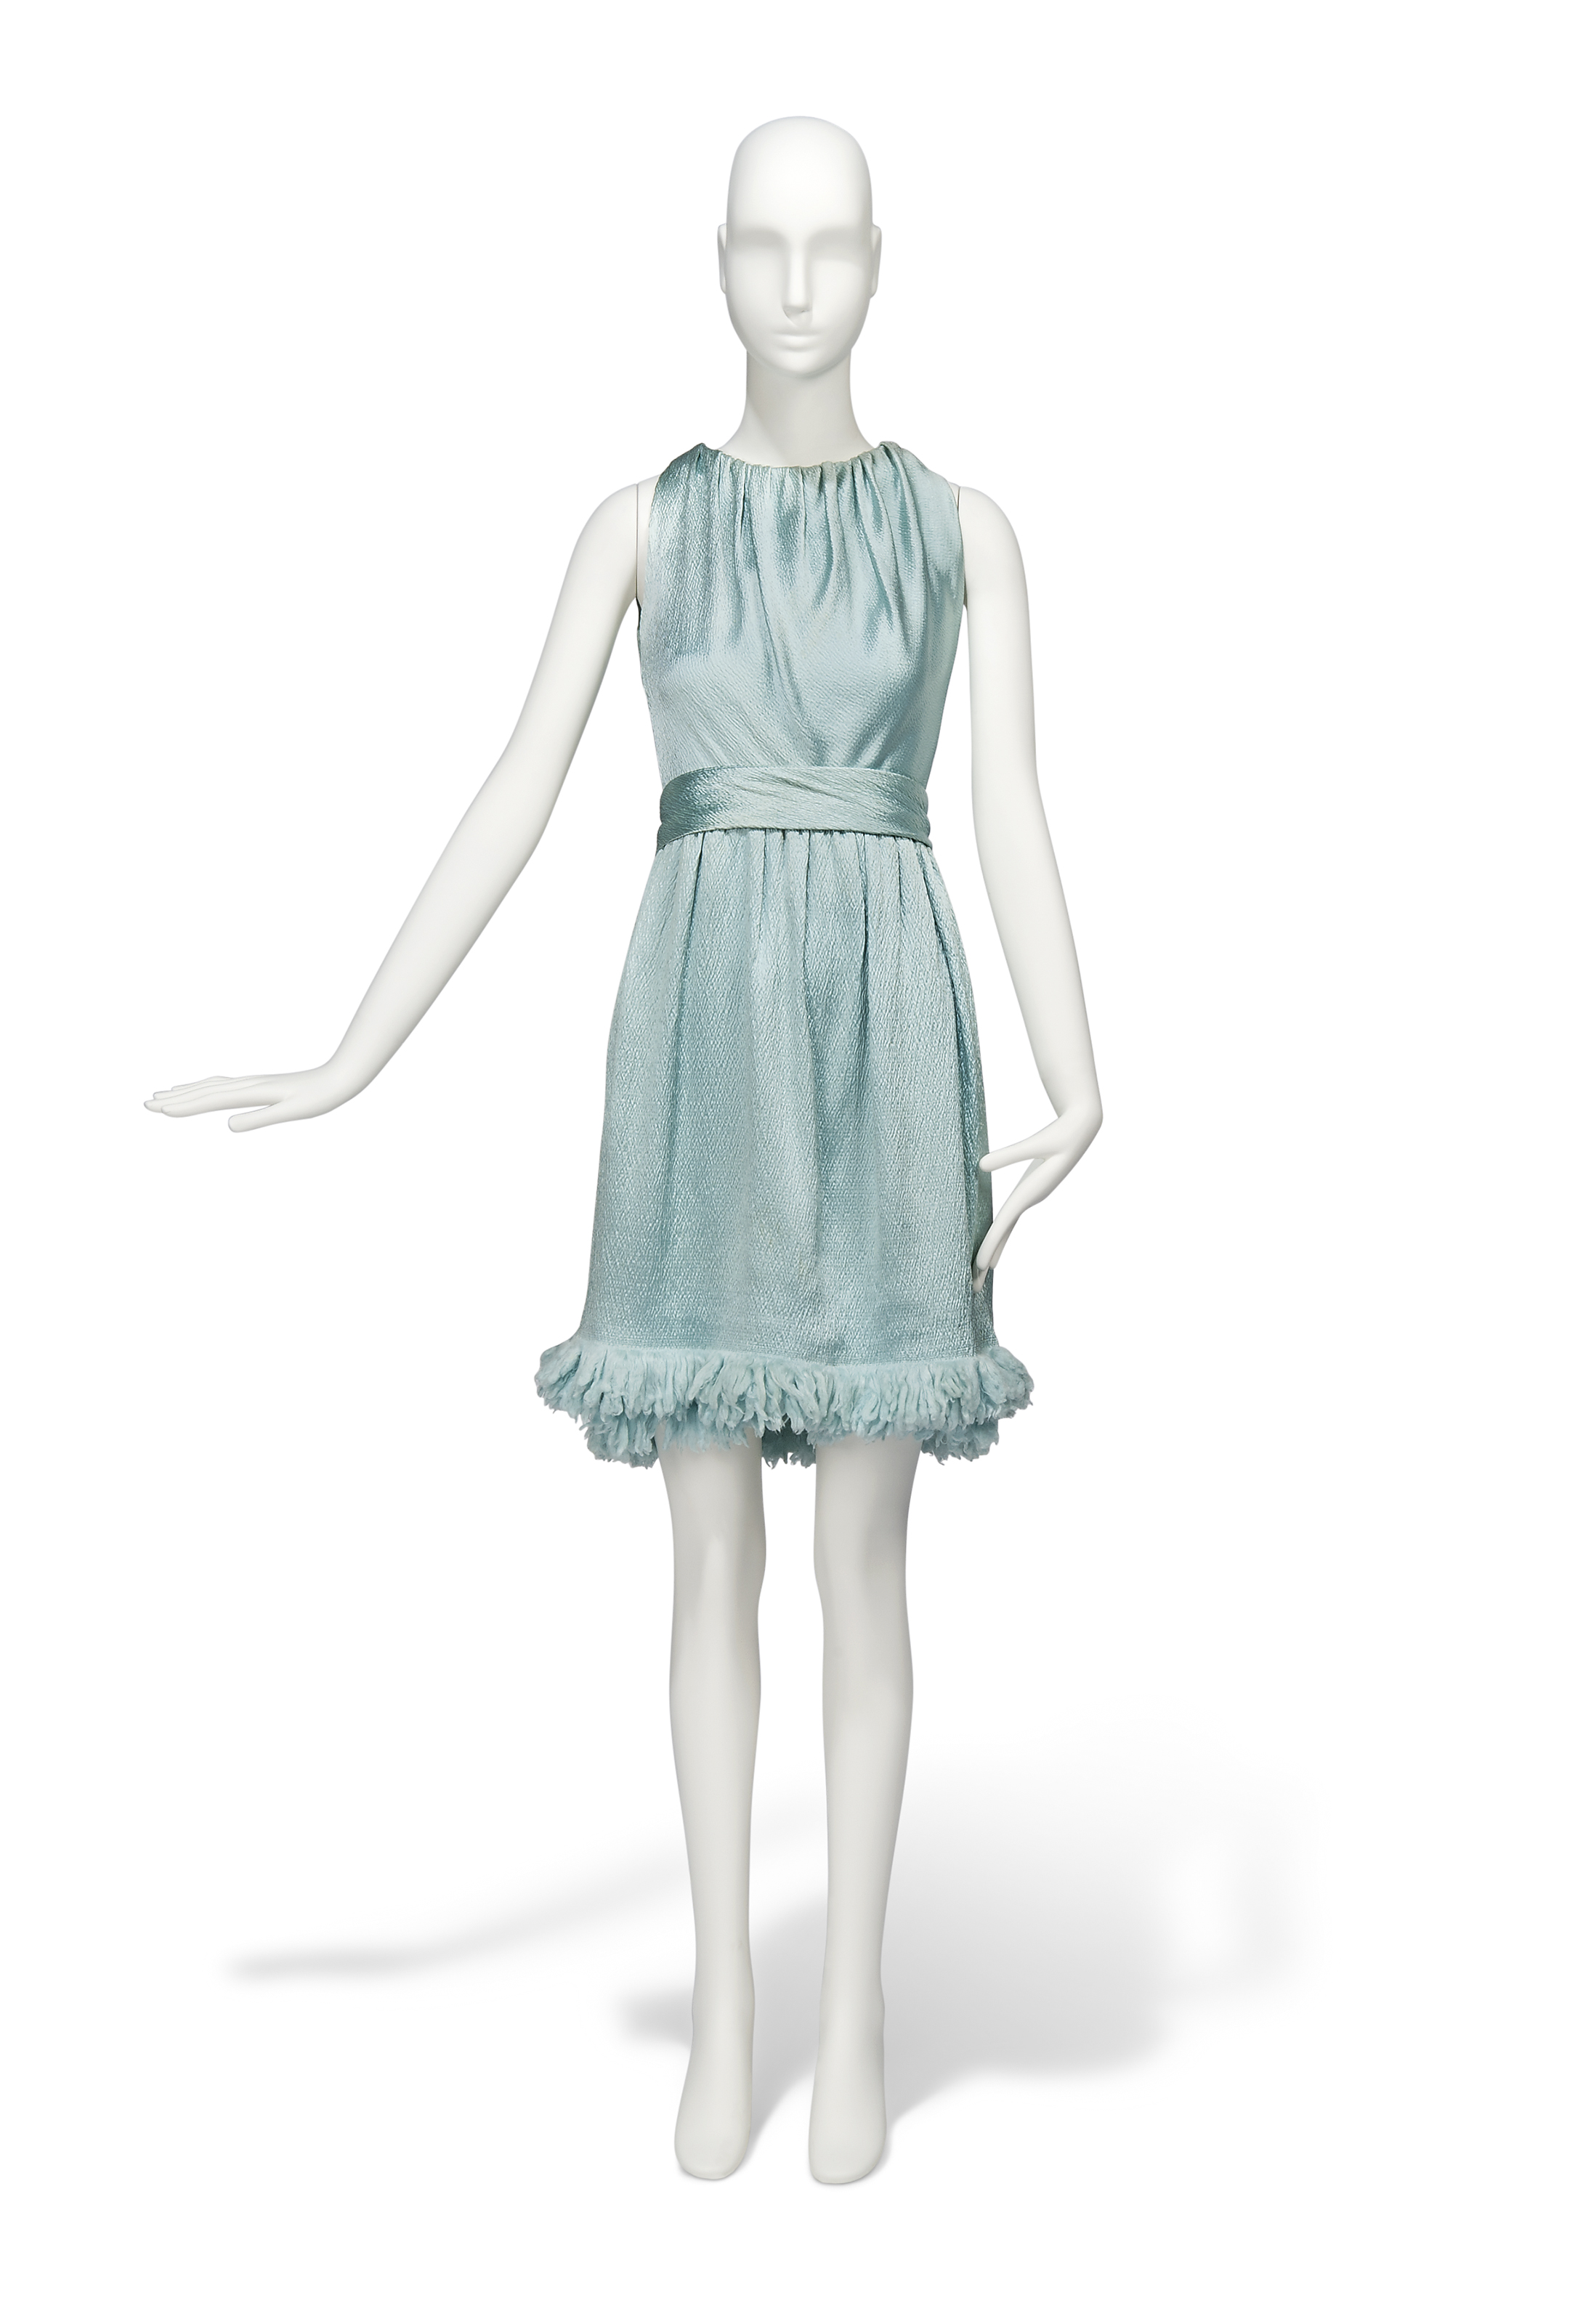 TWO FOR THE ROAD, 1967 A PALE BLUE CLOQUE SATIN COCKTAIL GOWN